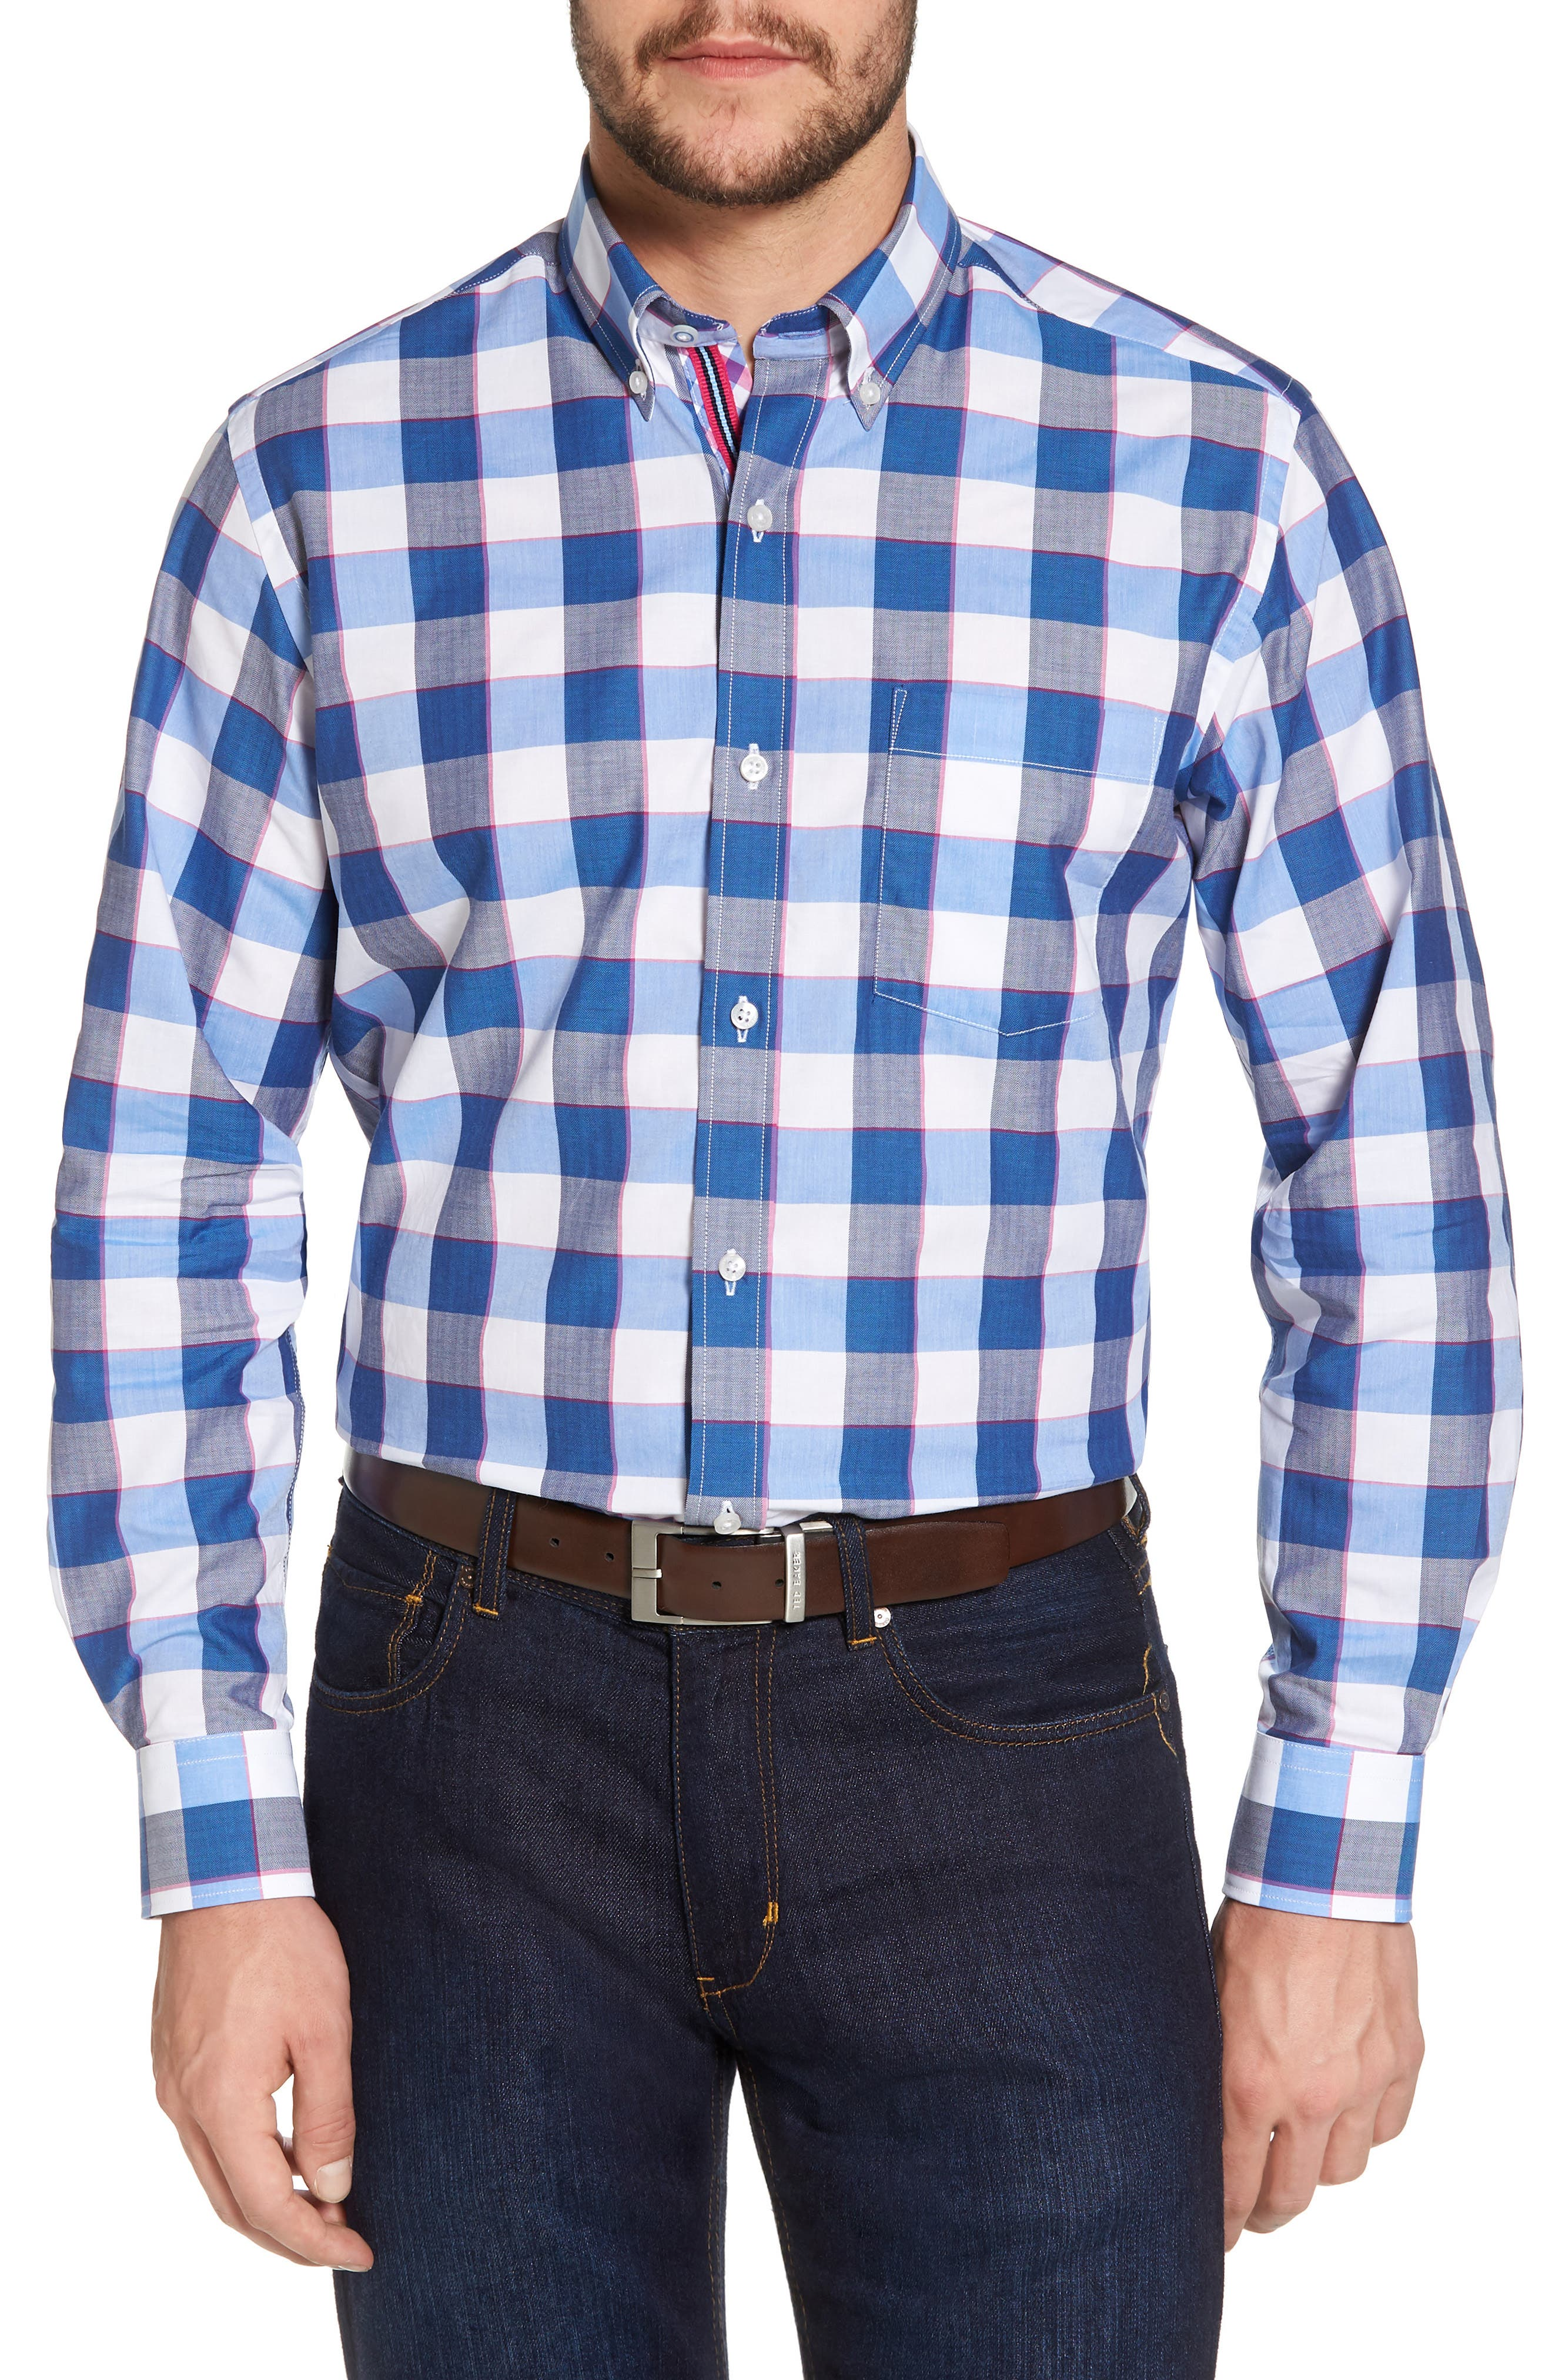 Jeremy Regular Fit Check Sport Shirt,                         Main,                         color,